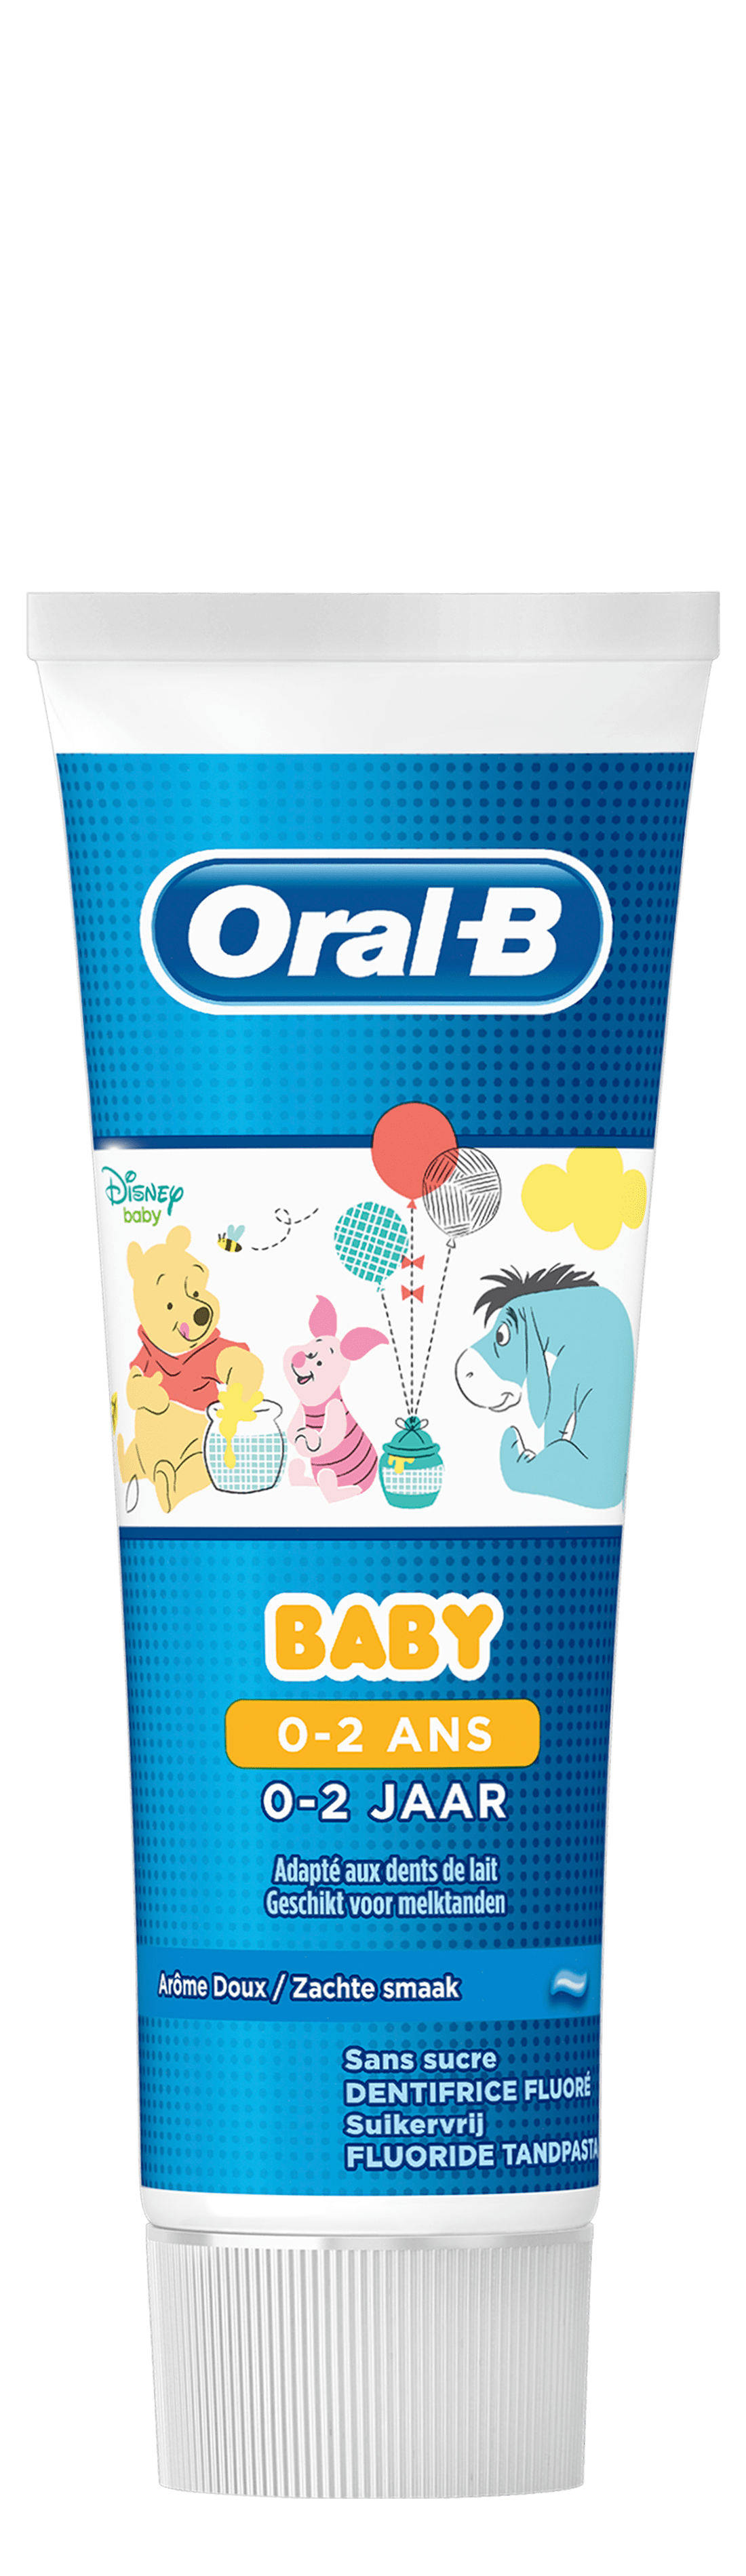 Oral-B Baby Winnie L'Ourson Dentifrice 75 ml, 0 à 2 Ans